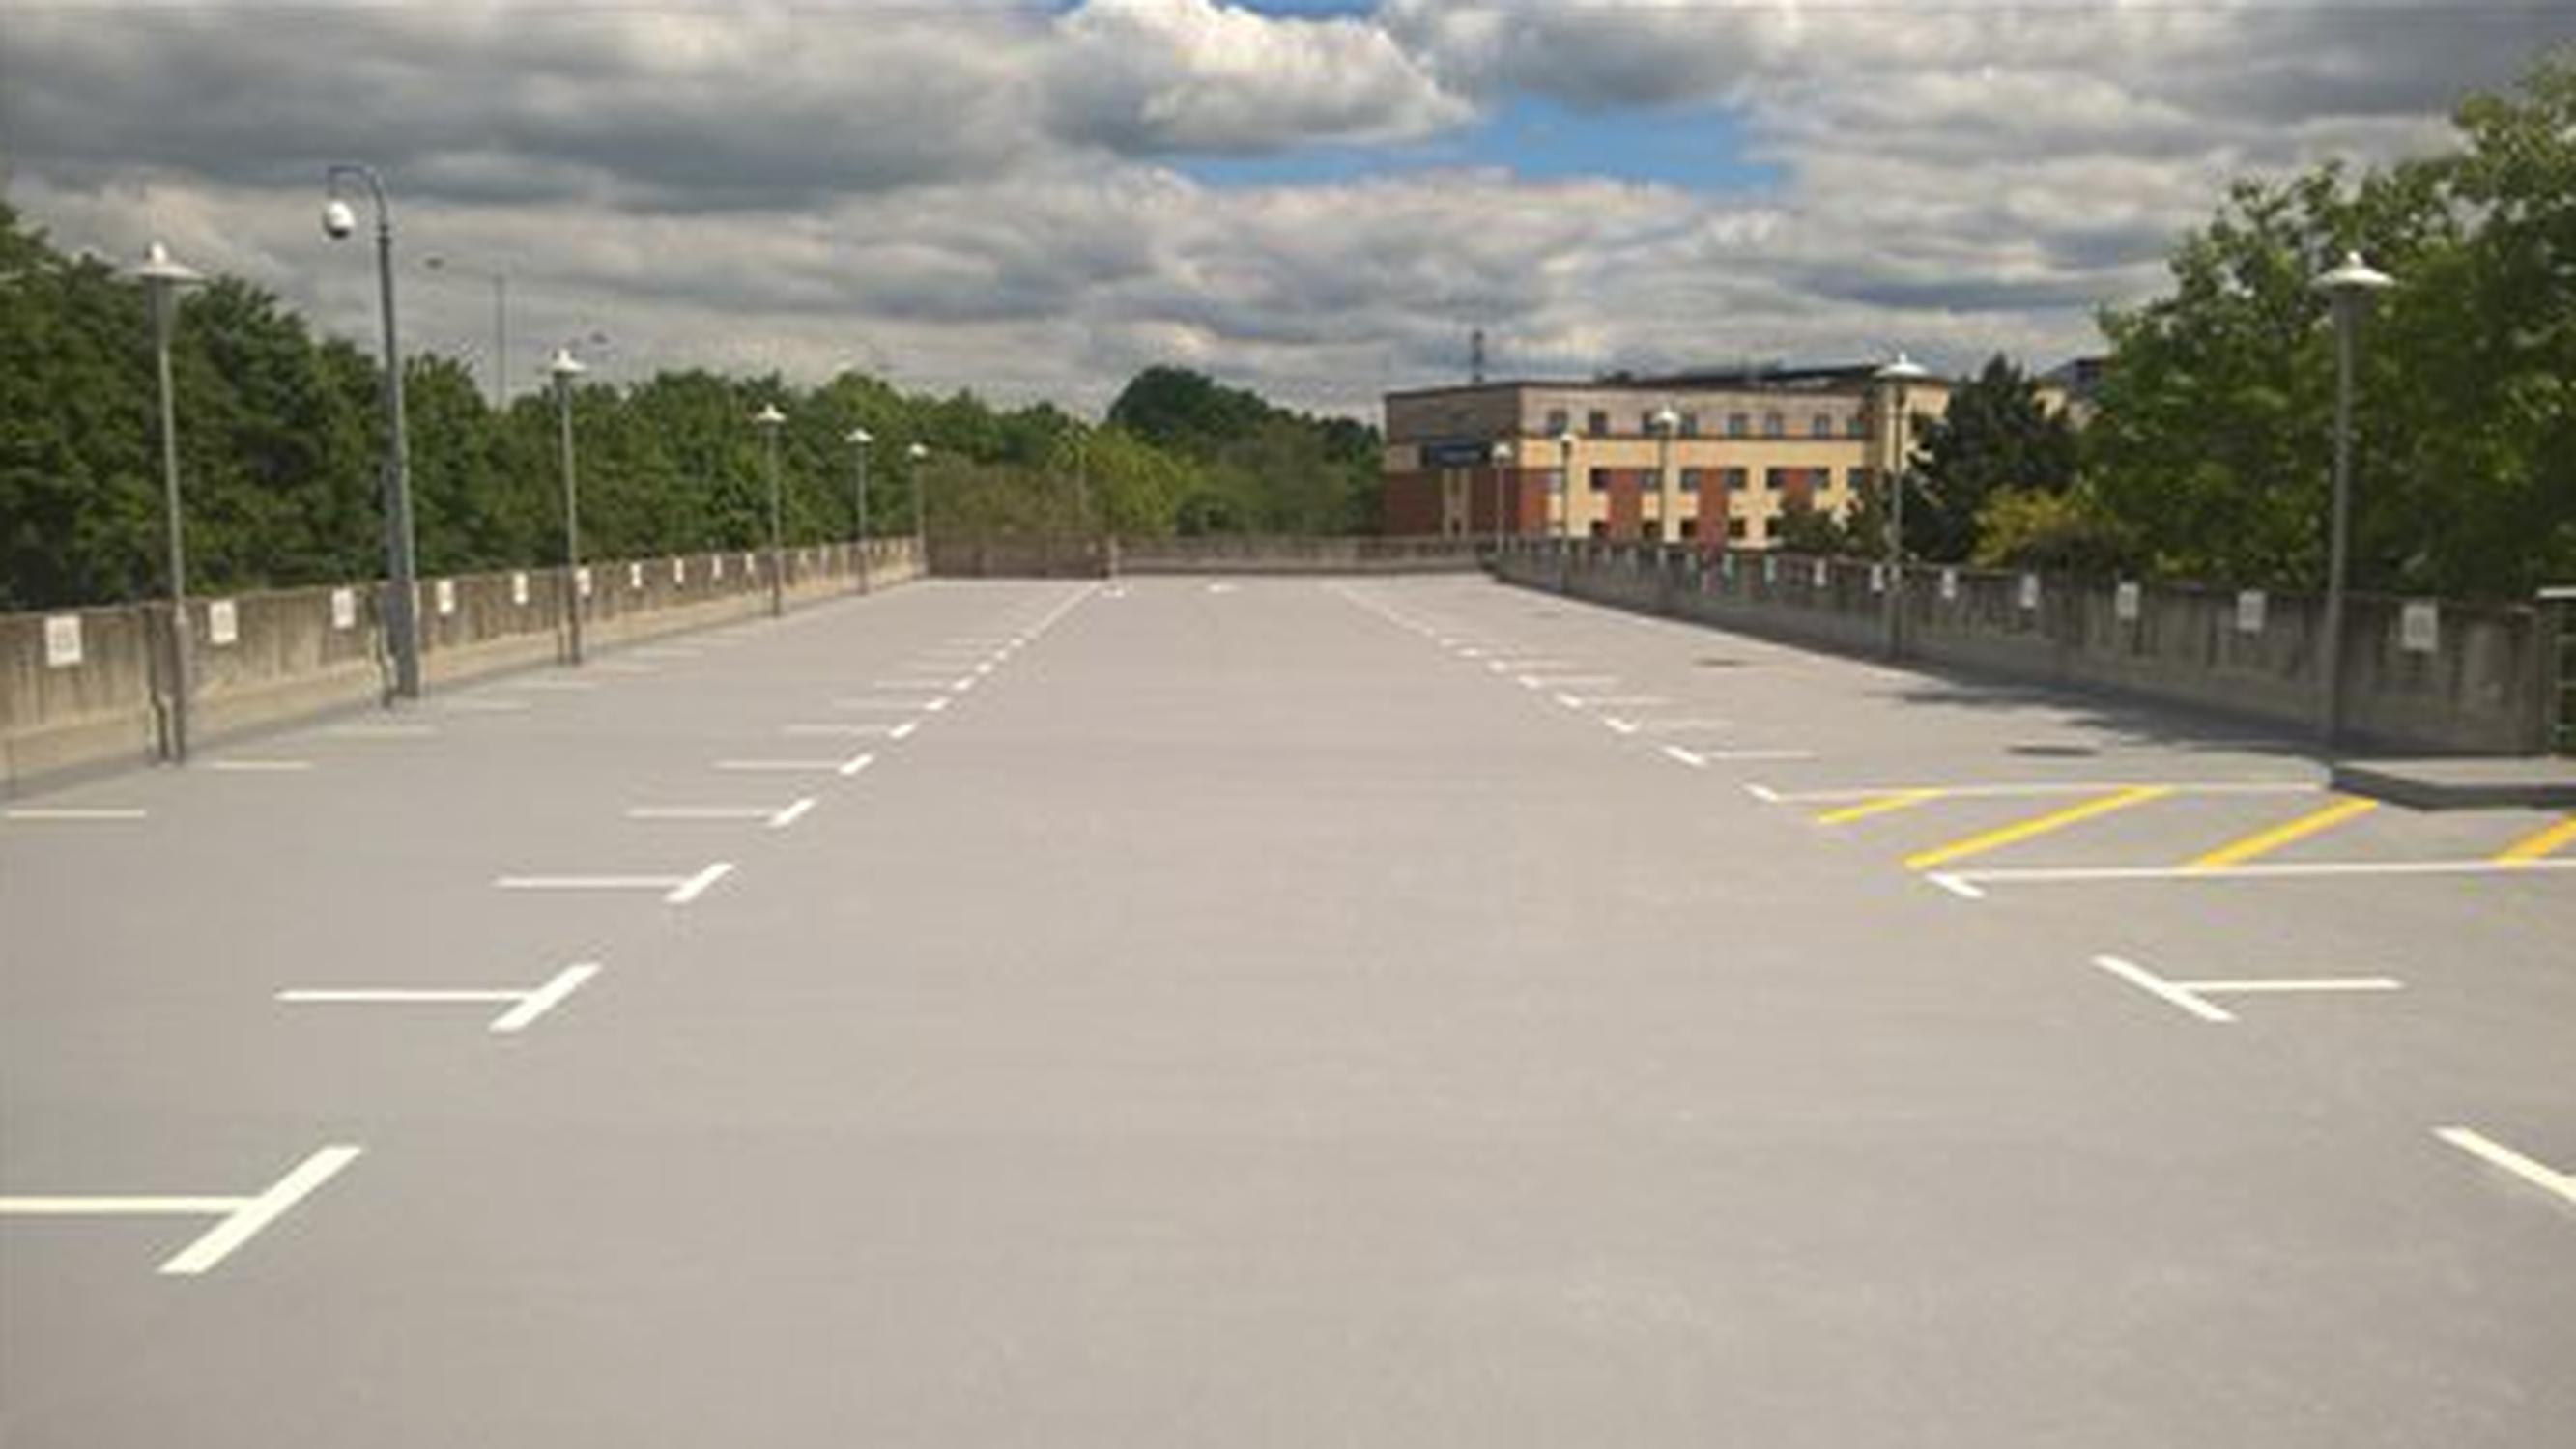 The car park at Berkshire Place